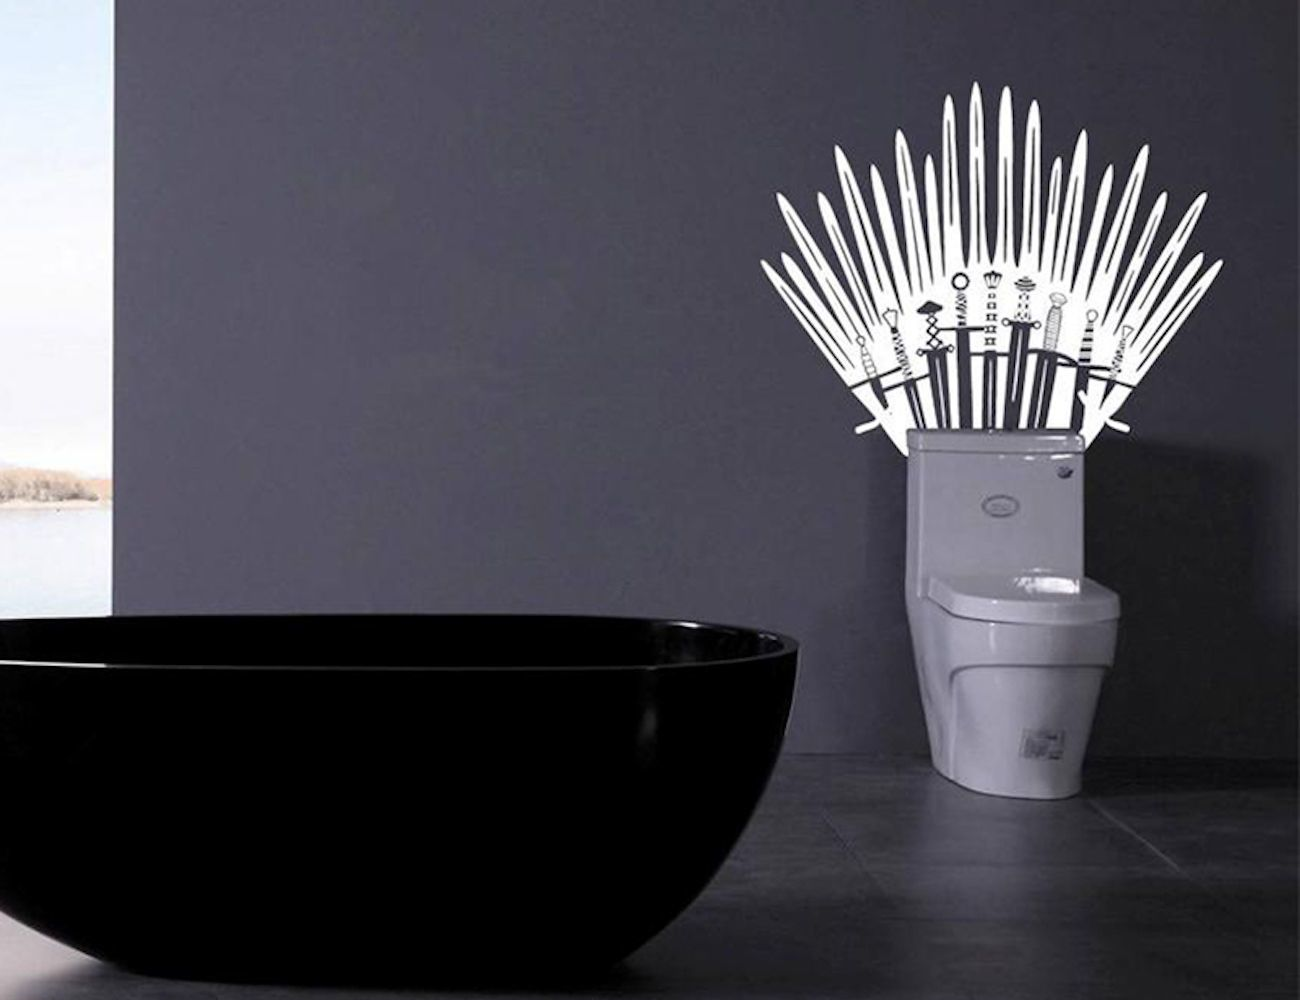 Introducing The Game Of Thrones Iron Throne Toilet Wall Decal